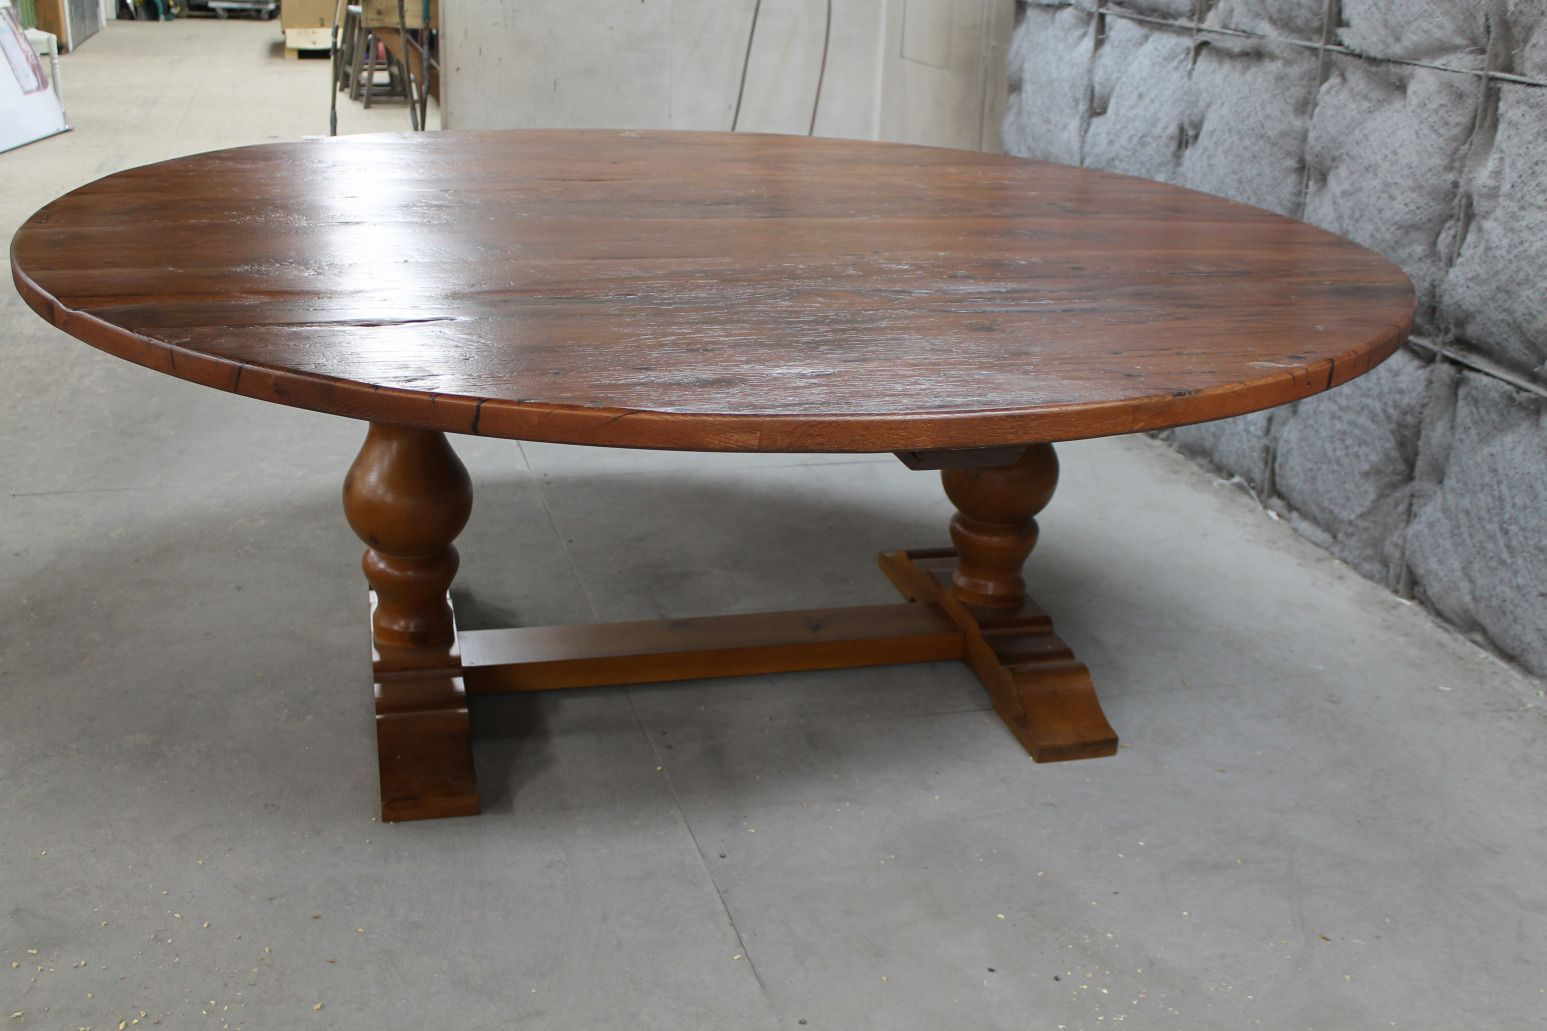 100 84 Round Dining Table Best Paint For Wood Furniture Check More At Http Livelylighting Com 84 Glass Round Dining Table Dining Table Rustic Dining Table